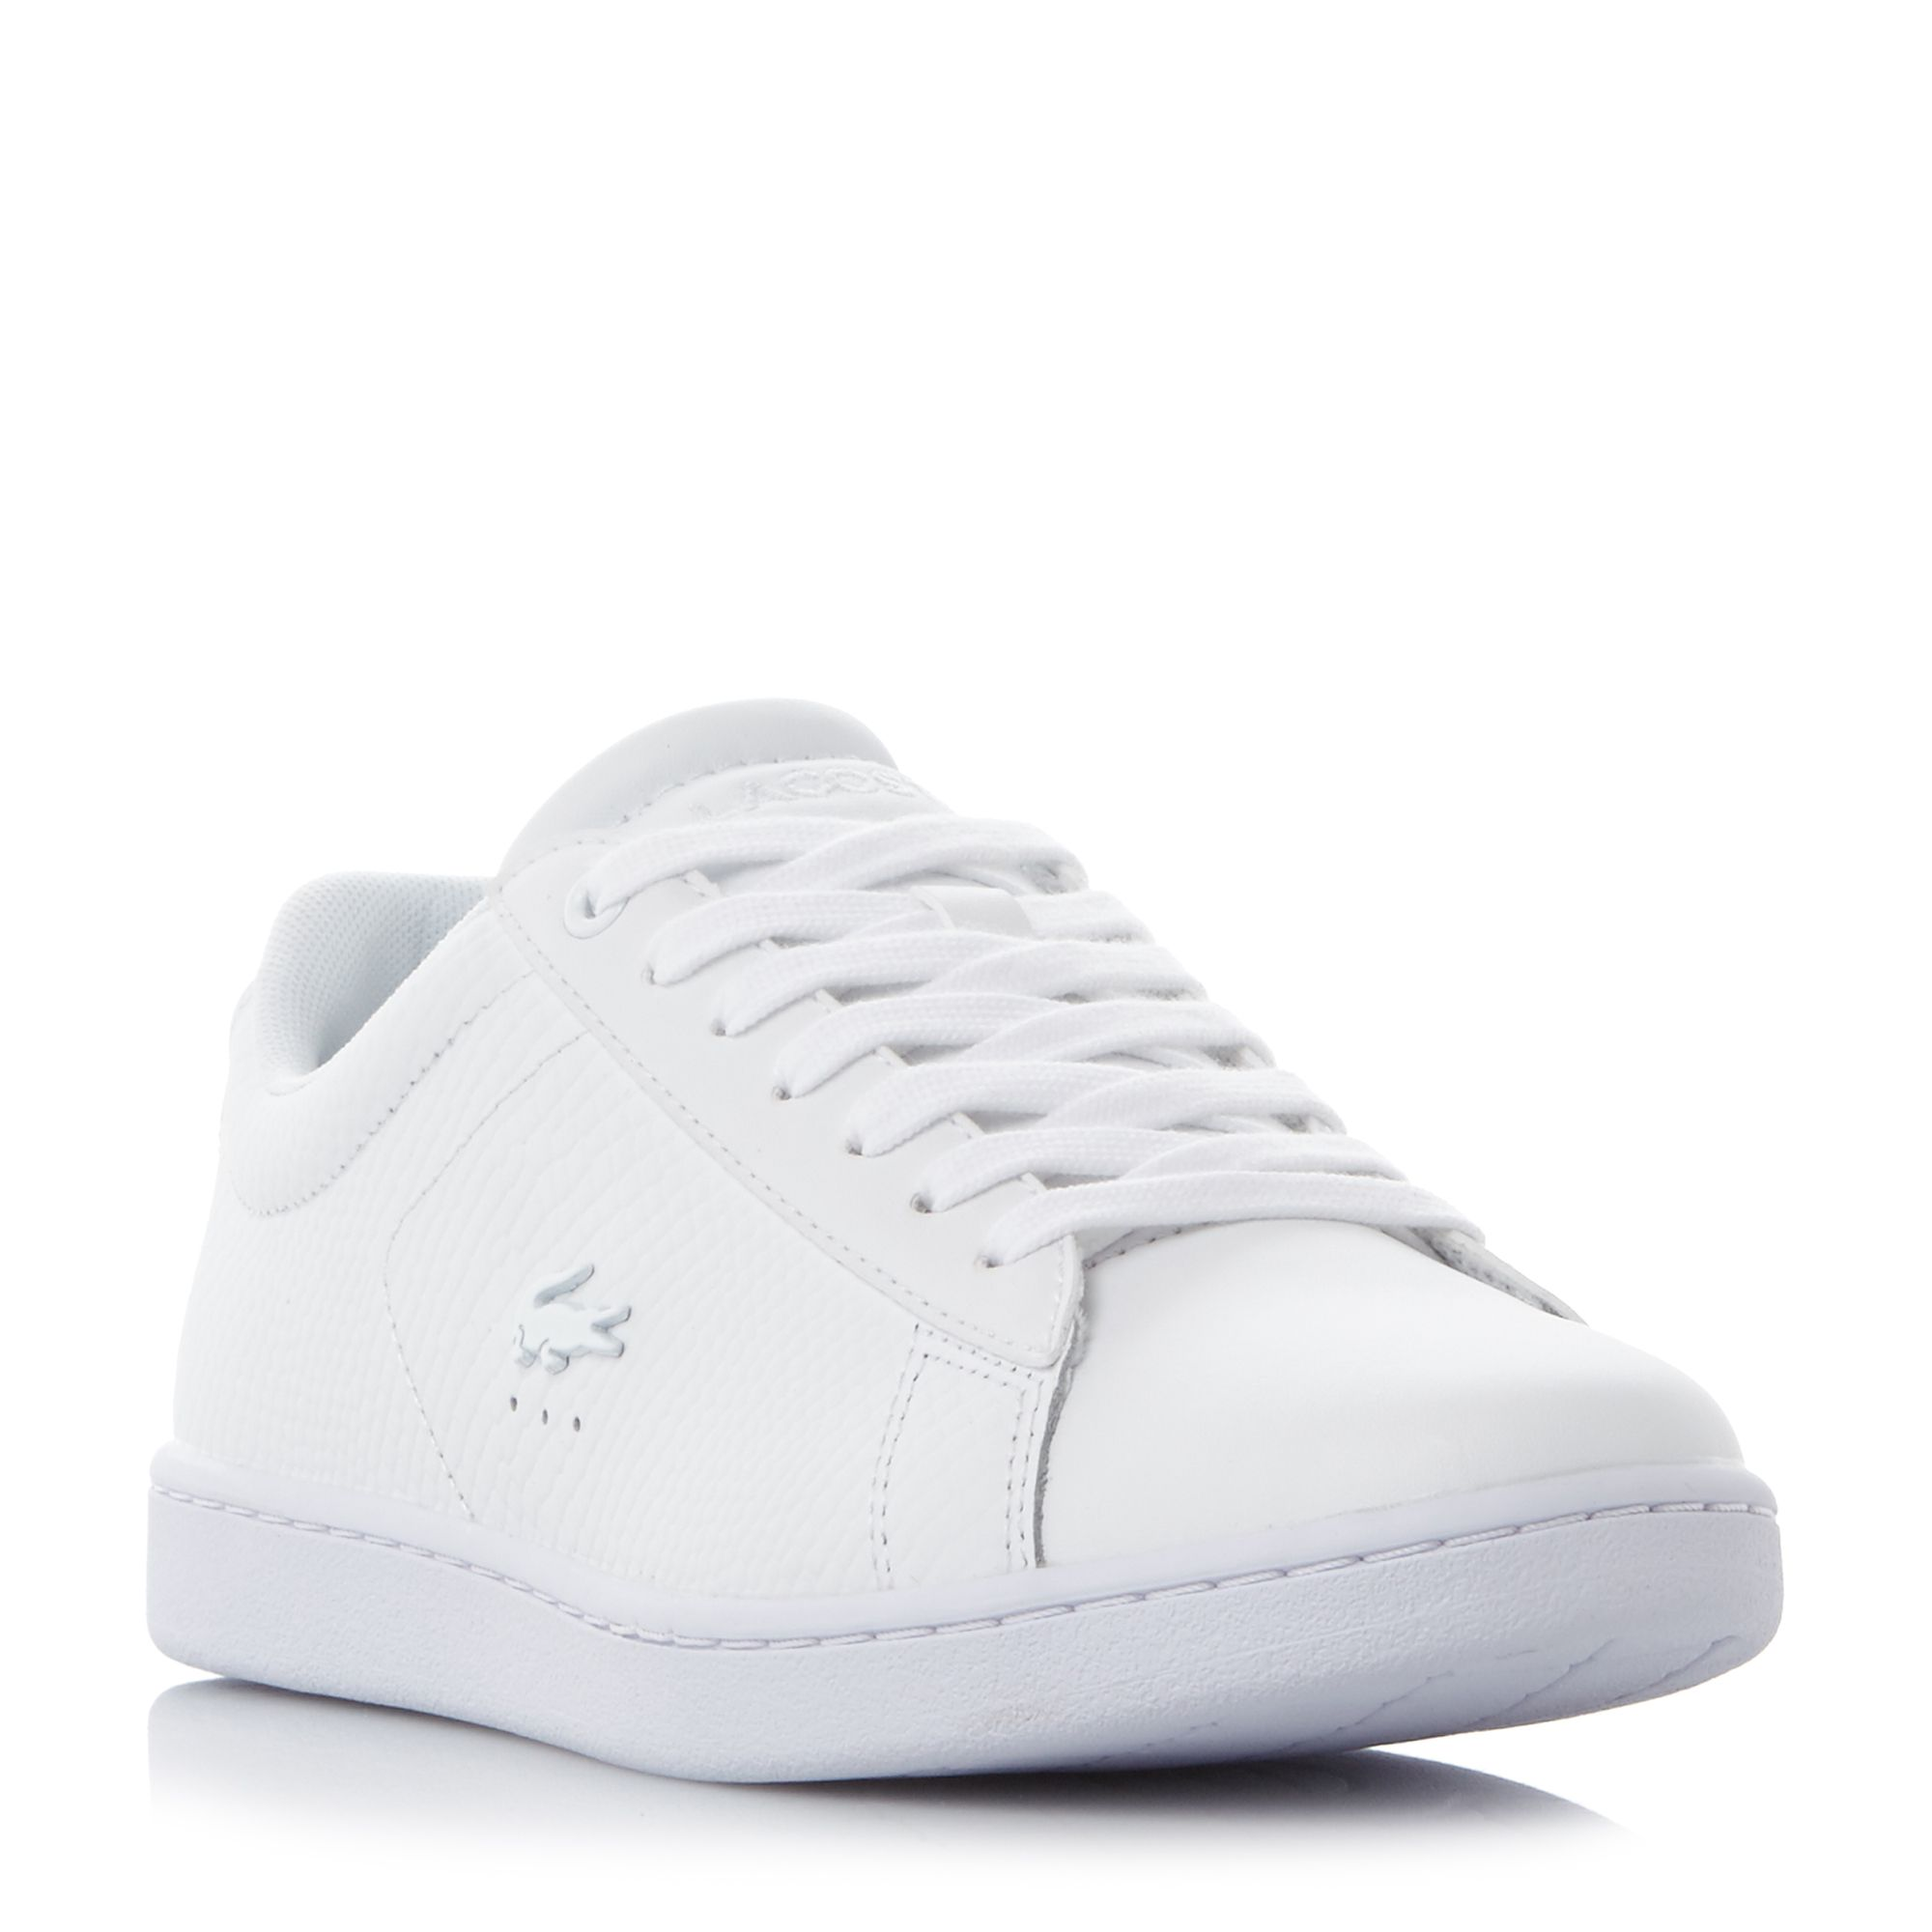 Lacoste Carnaby Evo Croc Logo Sneakers, White